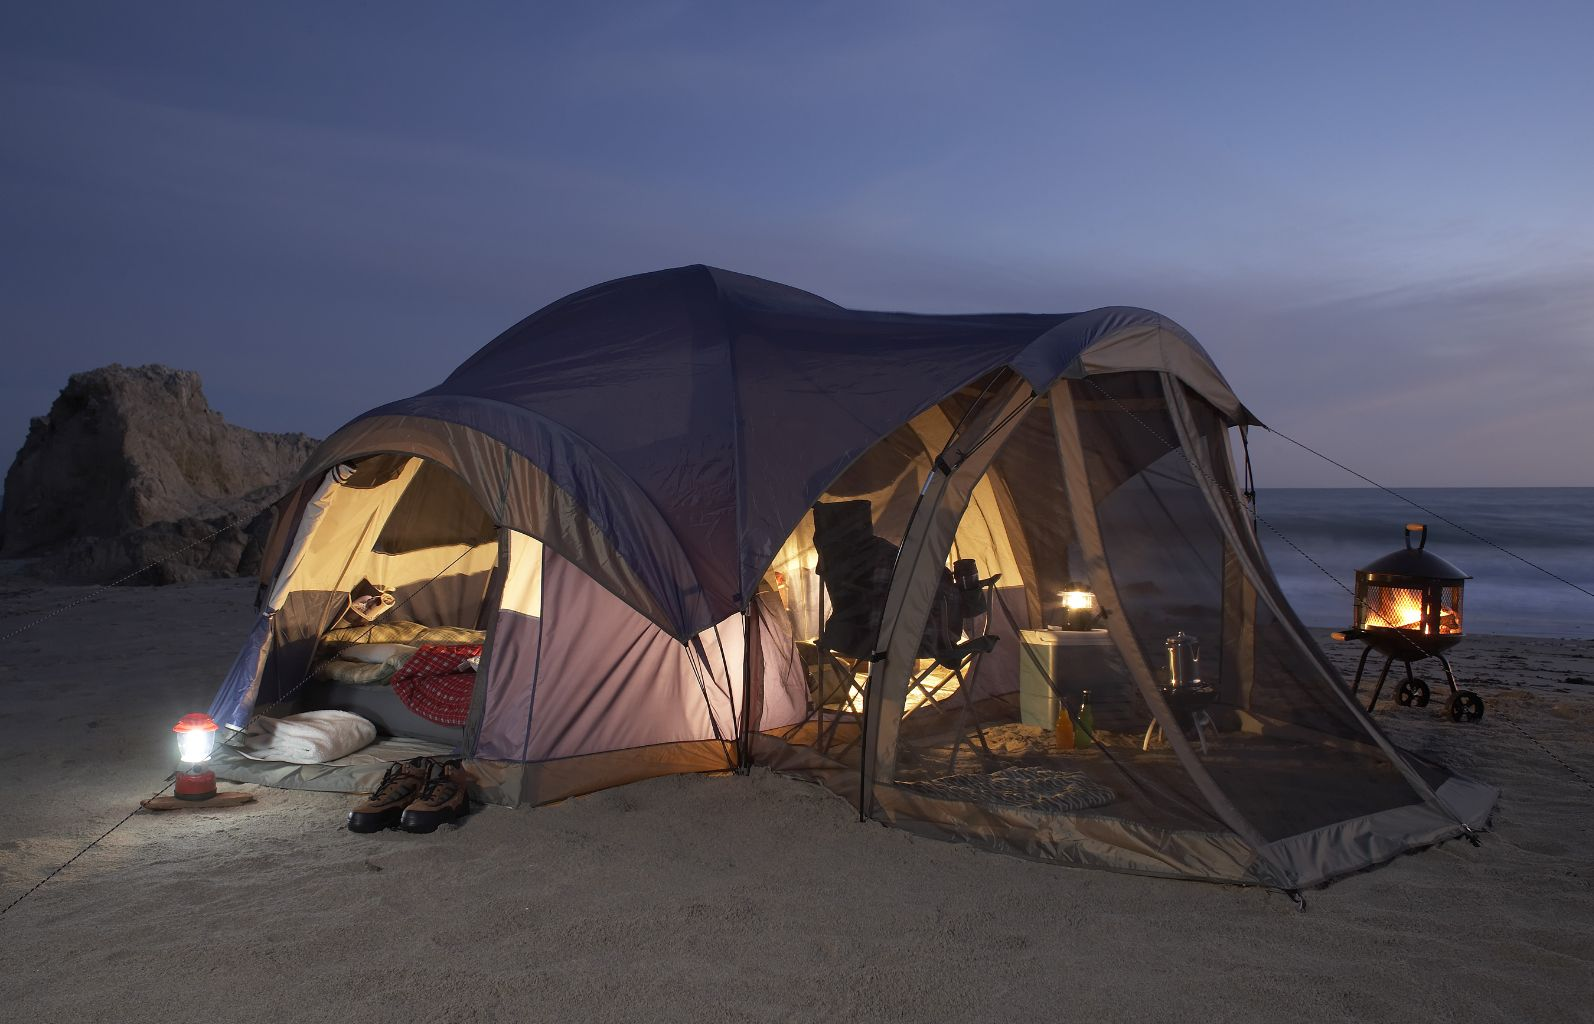 & Luxury Camping Destinations | Top 10 - Alux.com